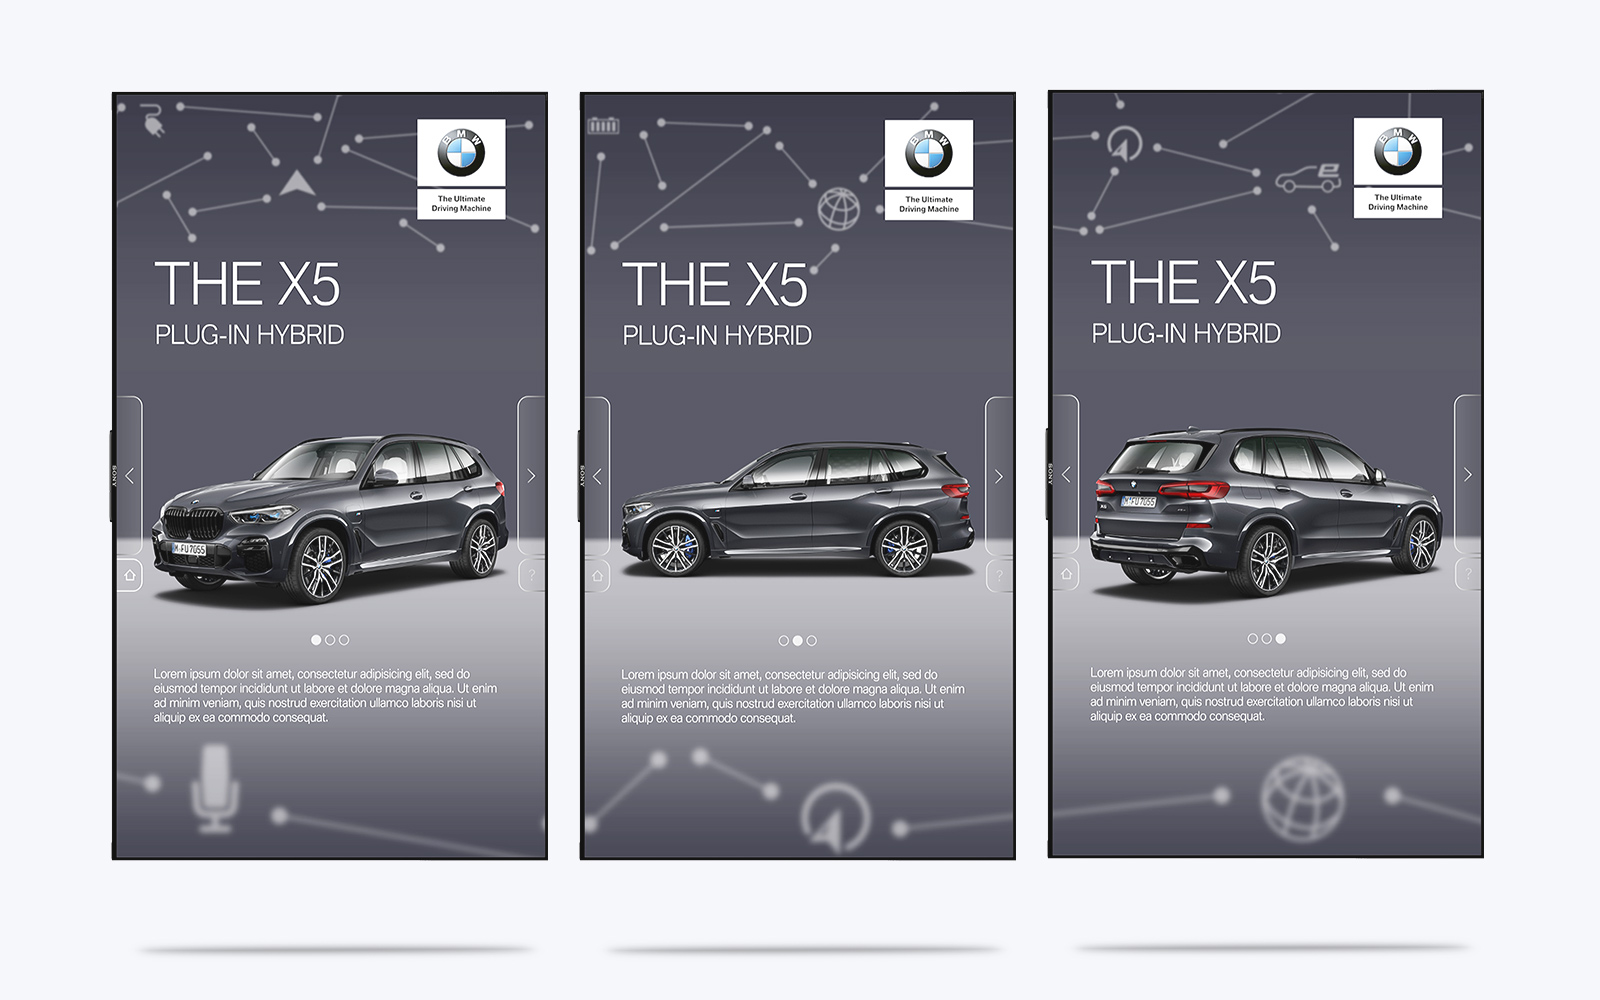 3 images displaying example of BMW digital display software